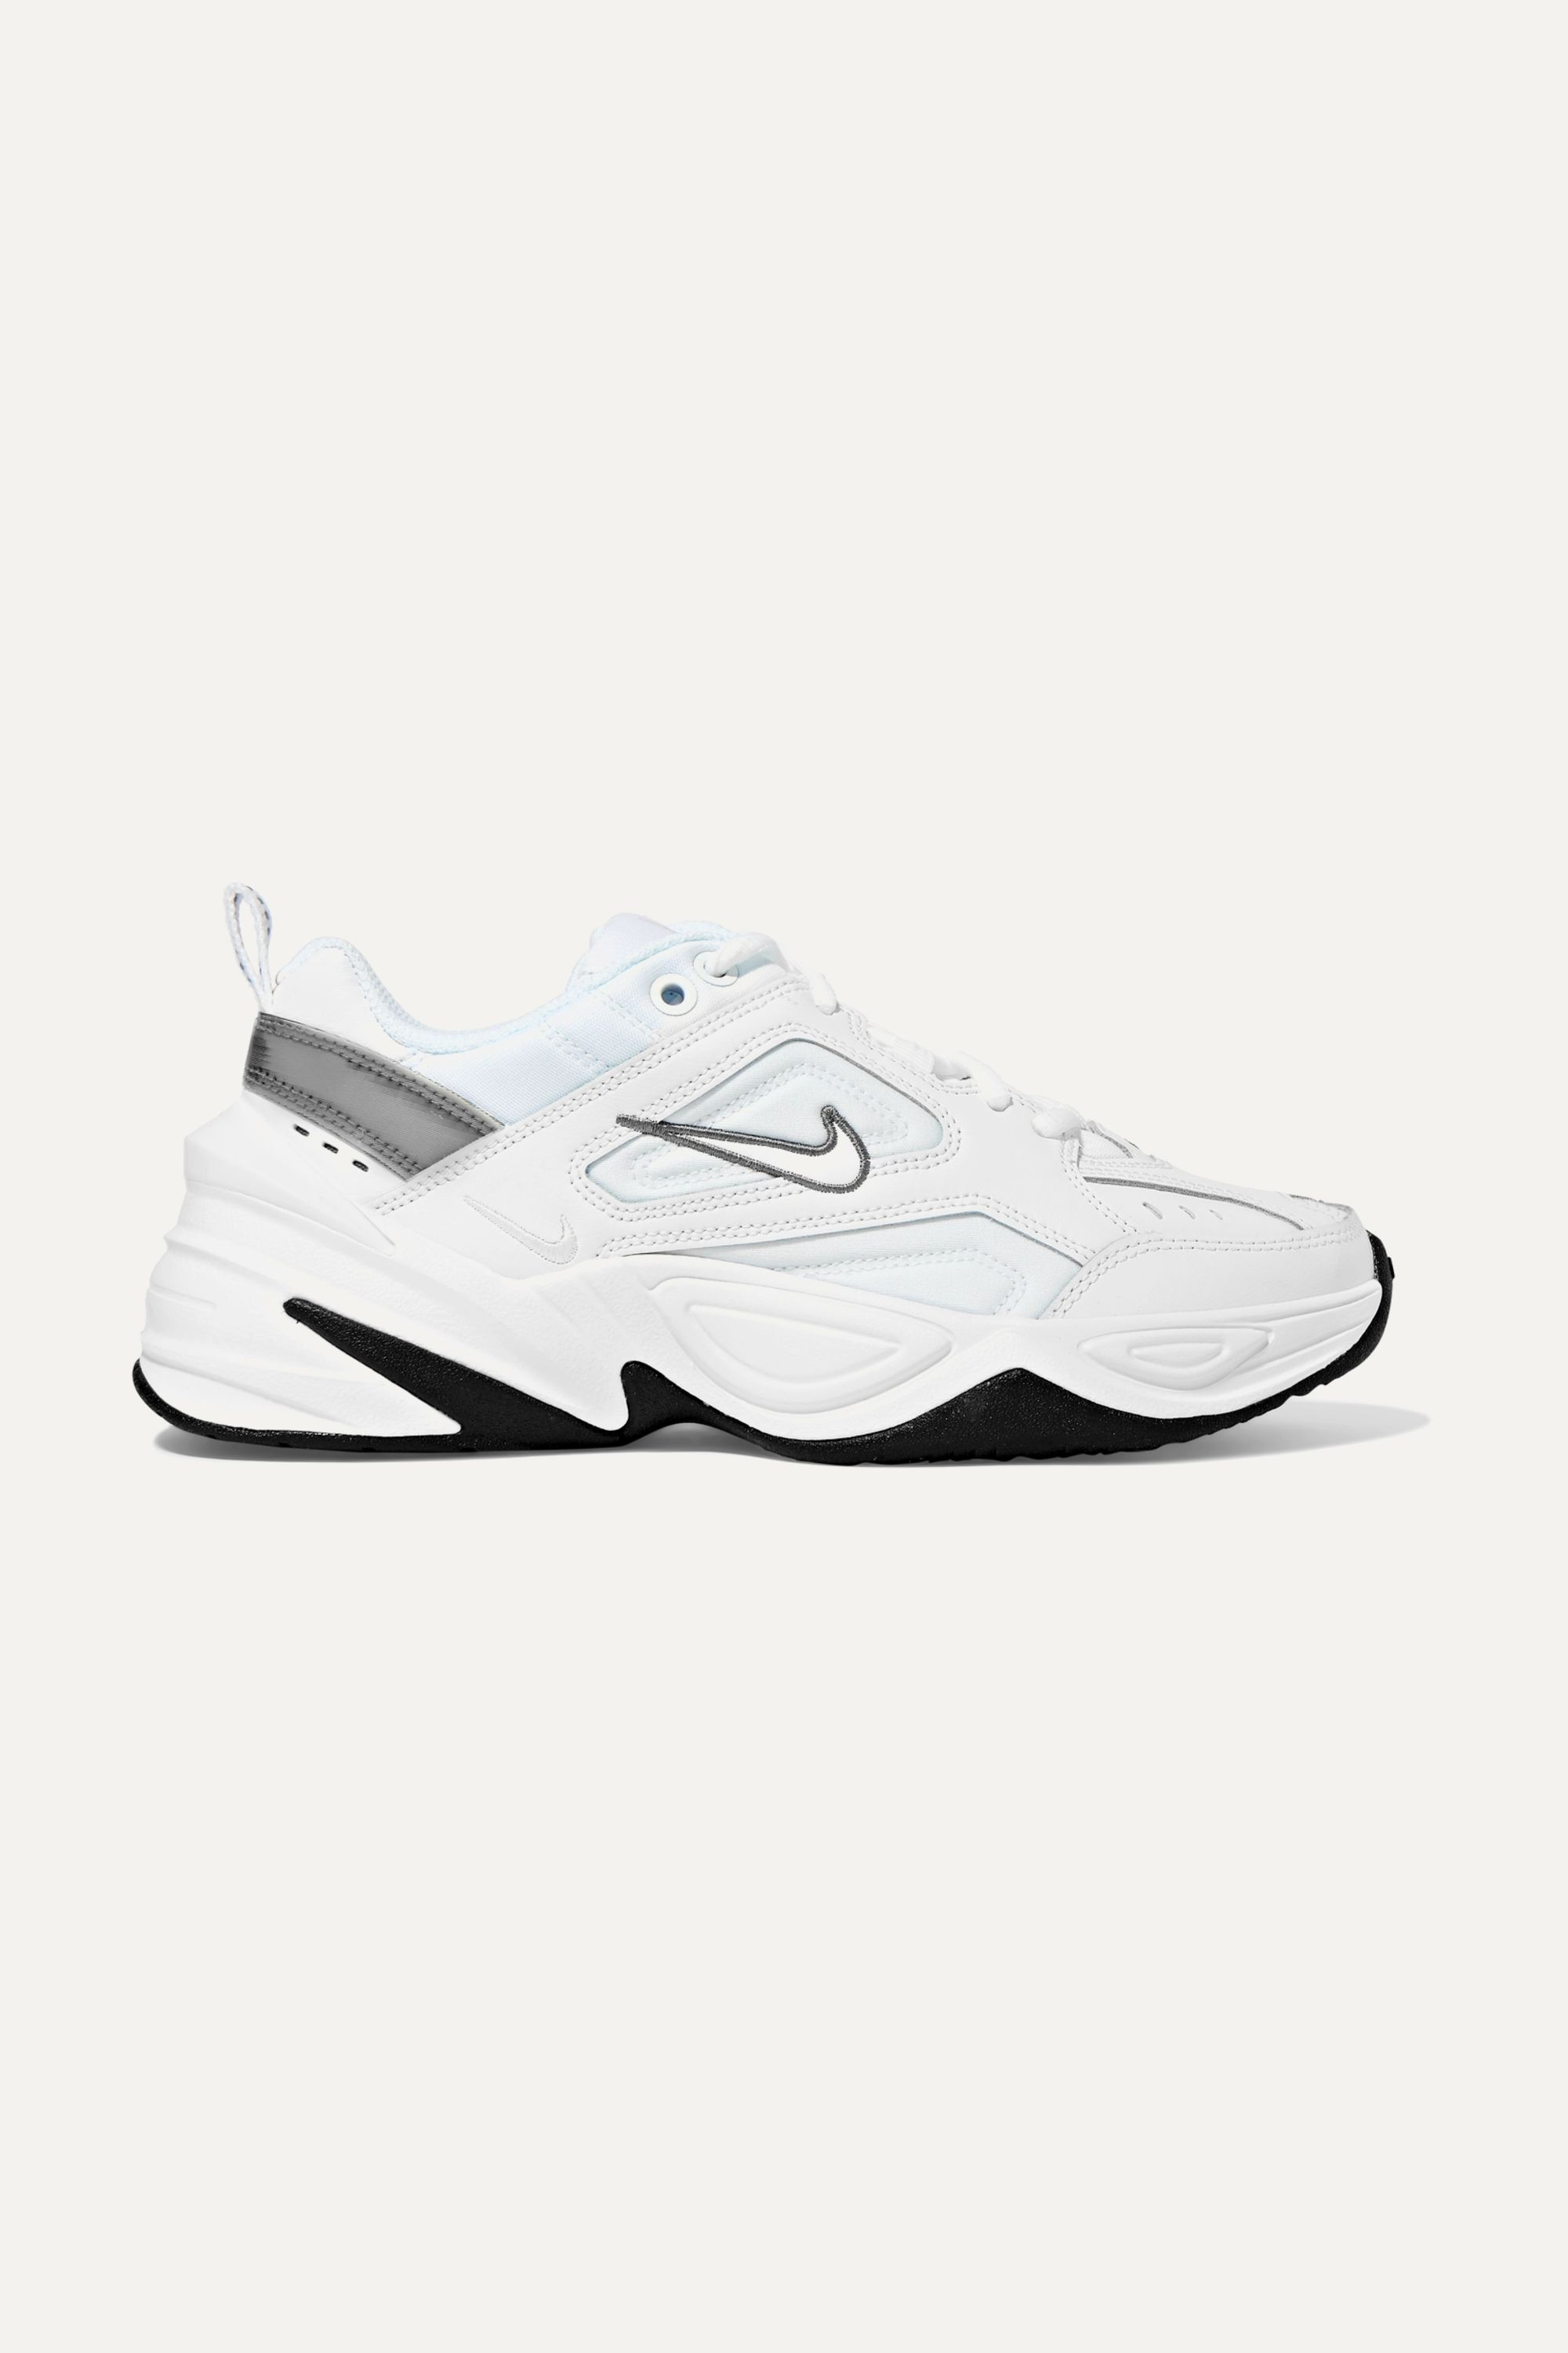 White M2k Tekno Leather And Mesh Sneakers Nike Net A Porter